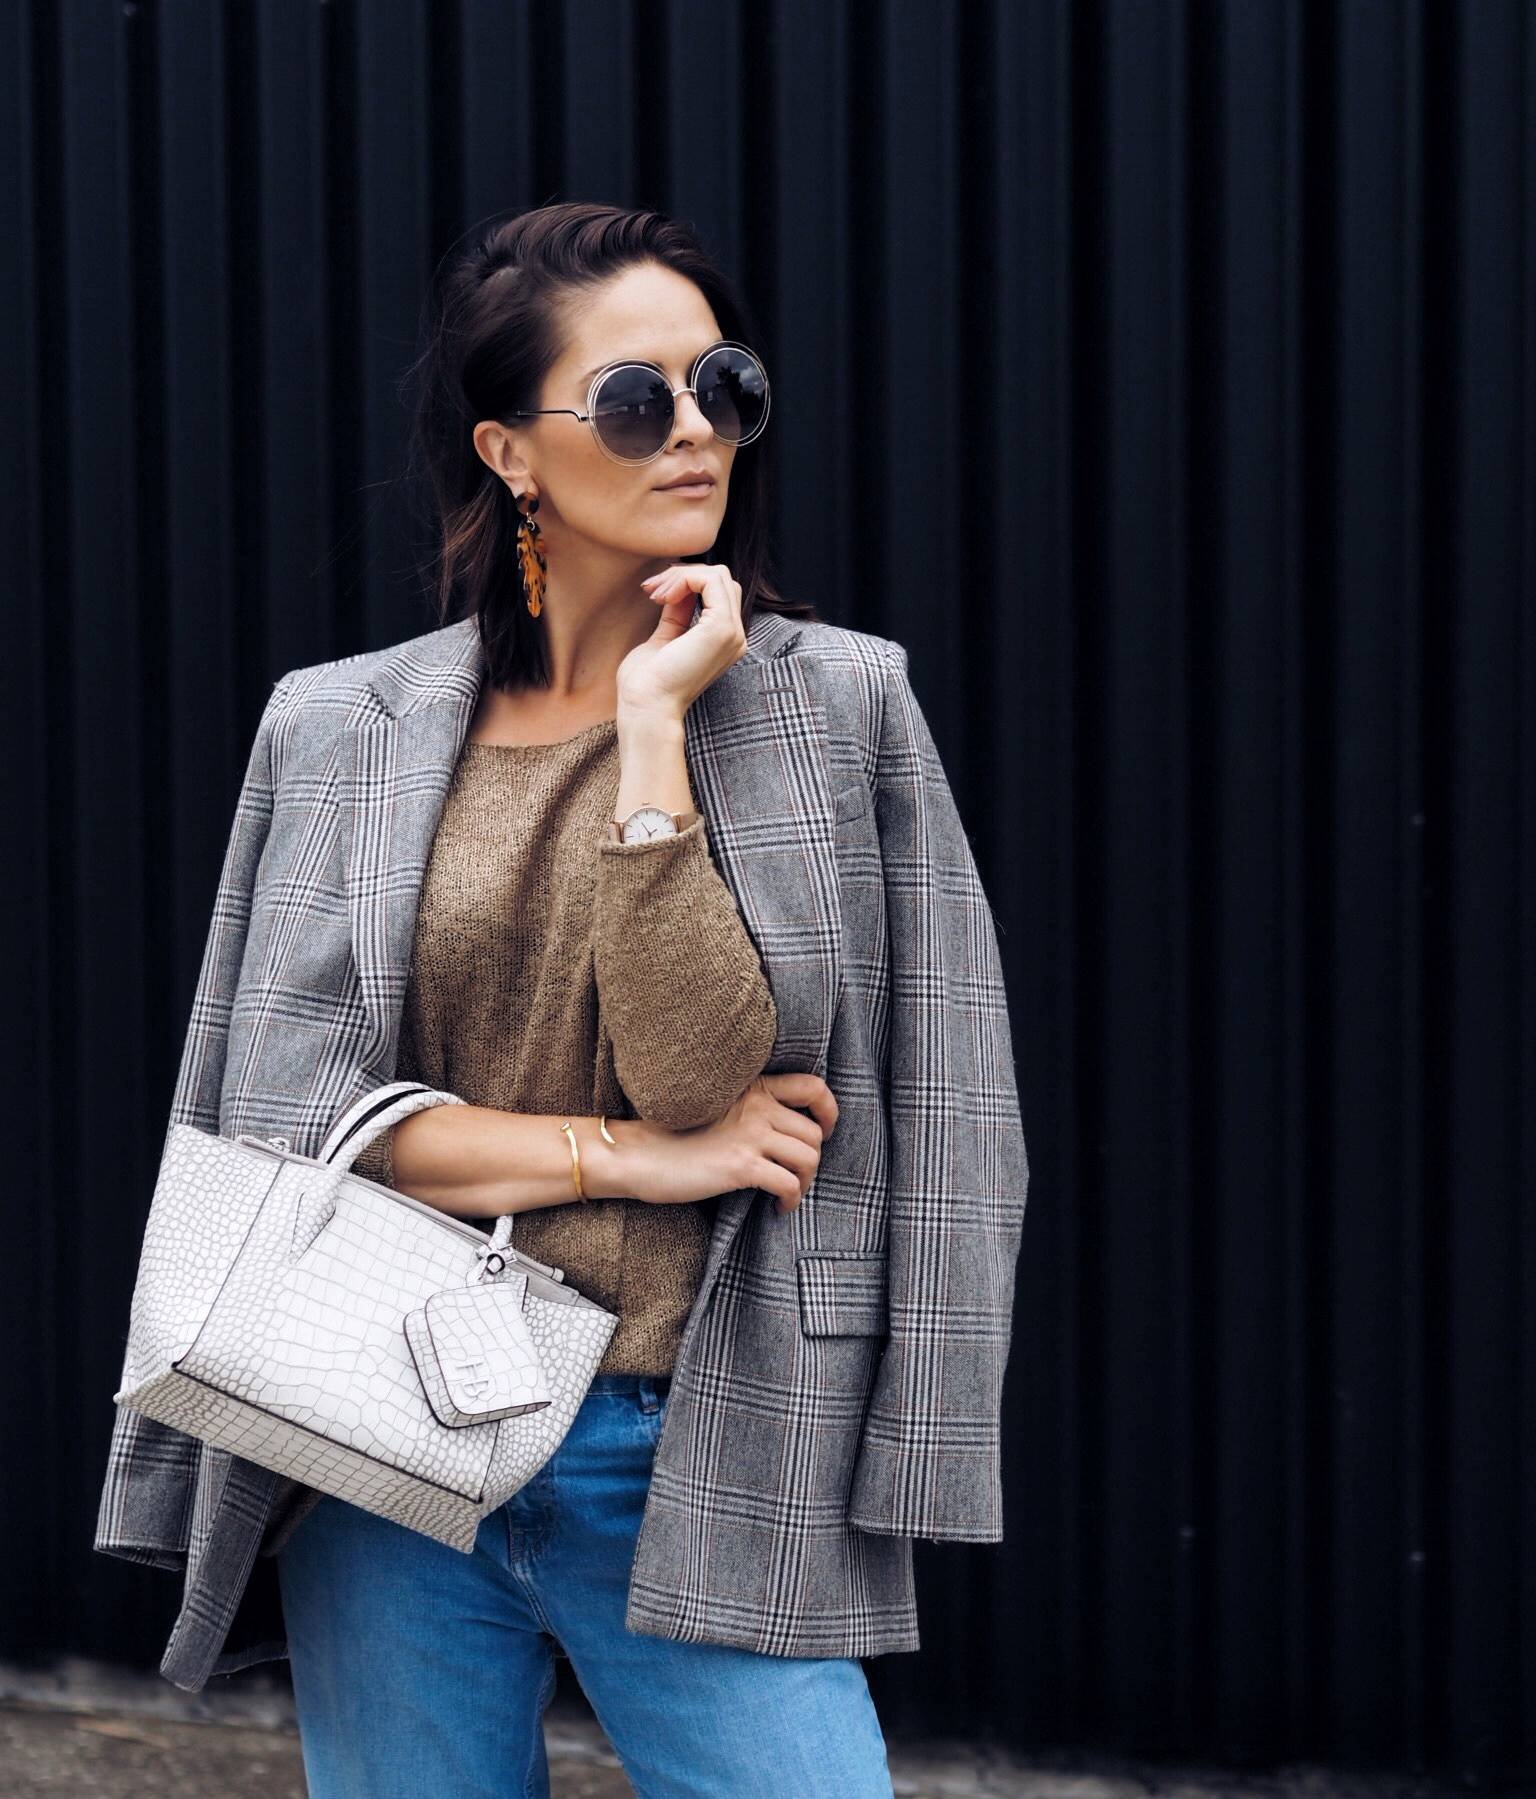 LAFOTKA-CHECK-BLAZER-STREET-STYLE-GLASGOW-SCOTTISH-FASHION-BLOGGER